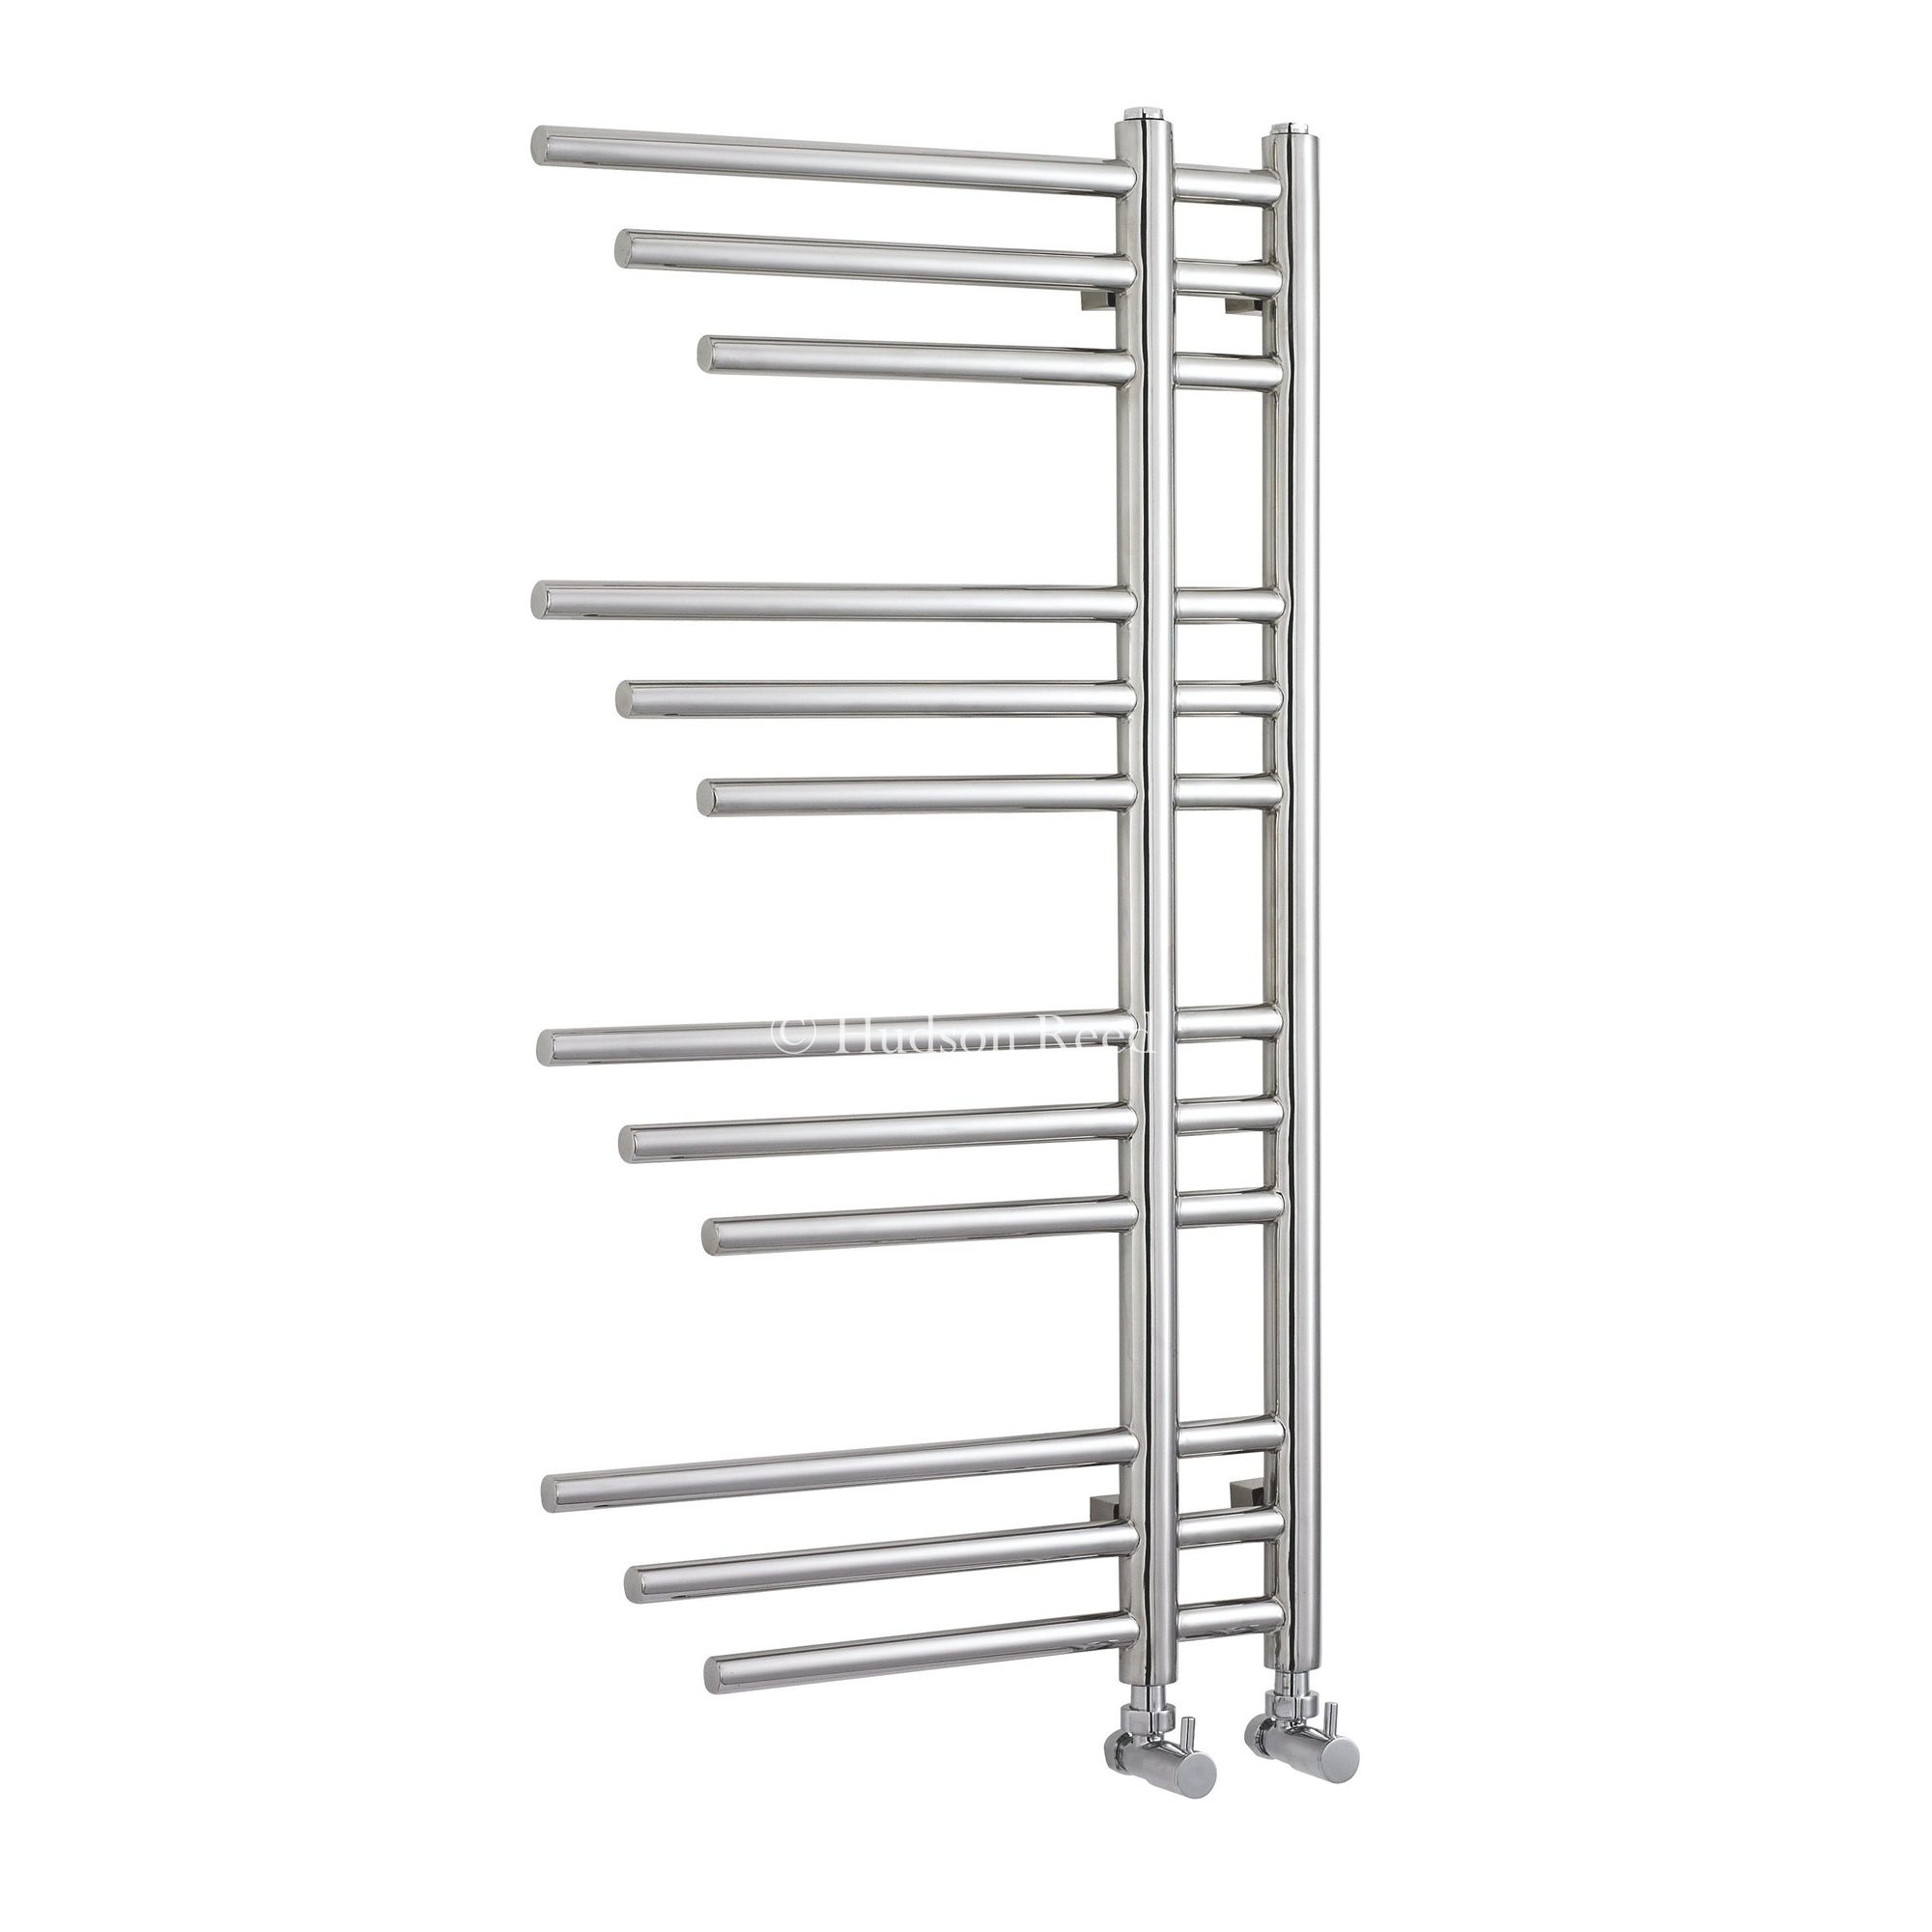 Hudson Reed Finesse Radiator in Stainless - 95 cm x 50 cm at Tesco Direct